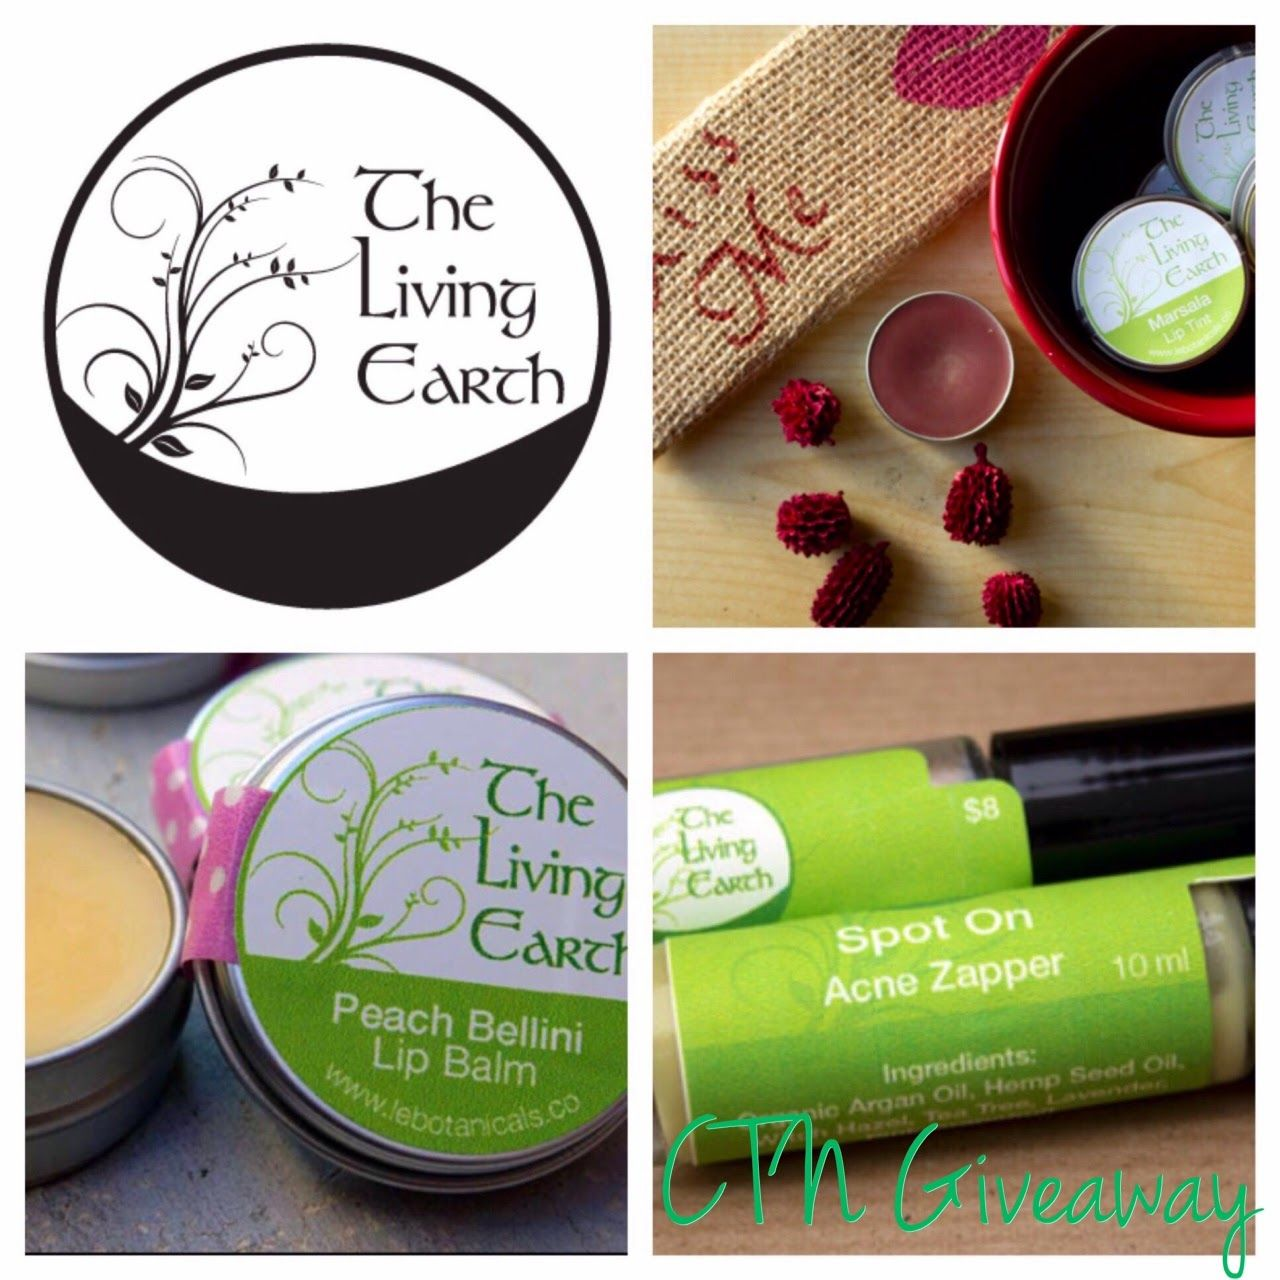 Living Earth Botanicals Giveaway and Review at Cheers to Novelty, open ww and ends 3/16/15.